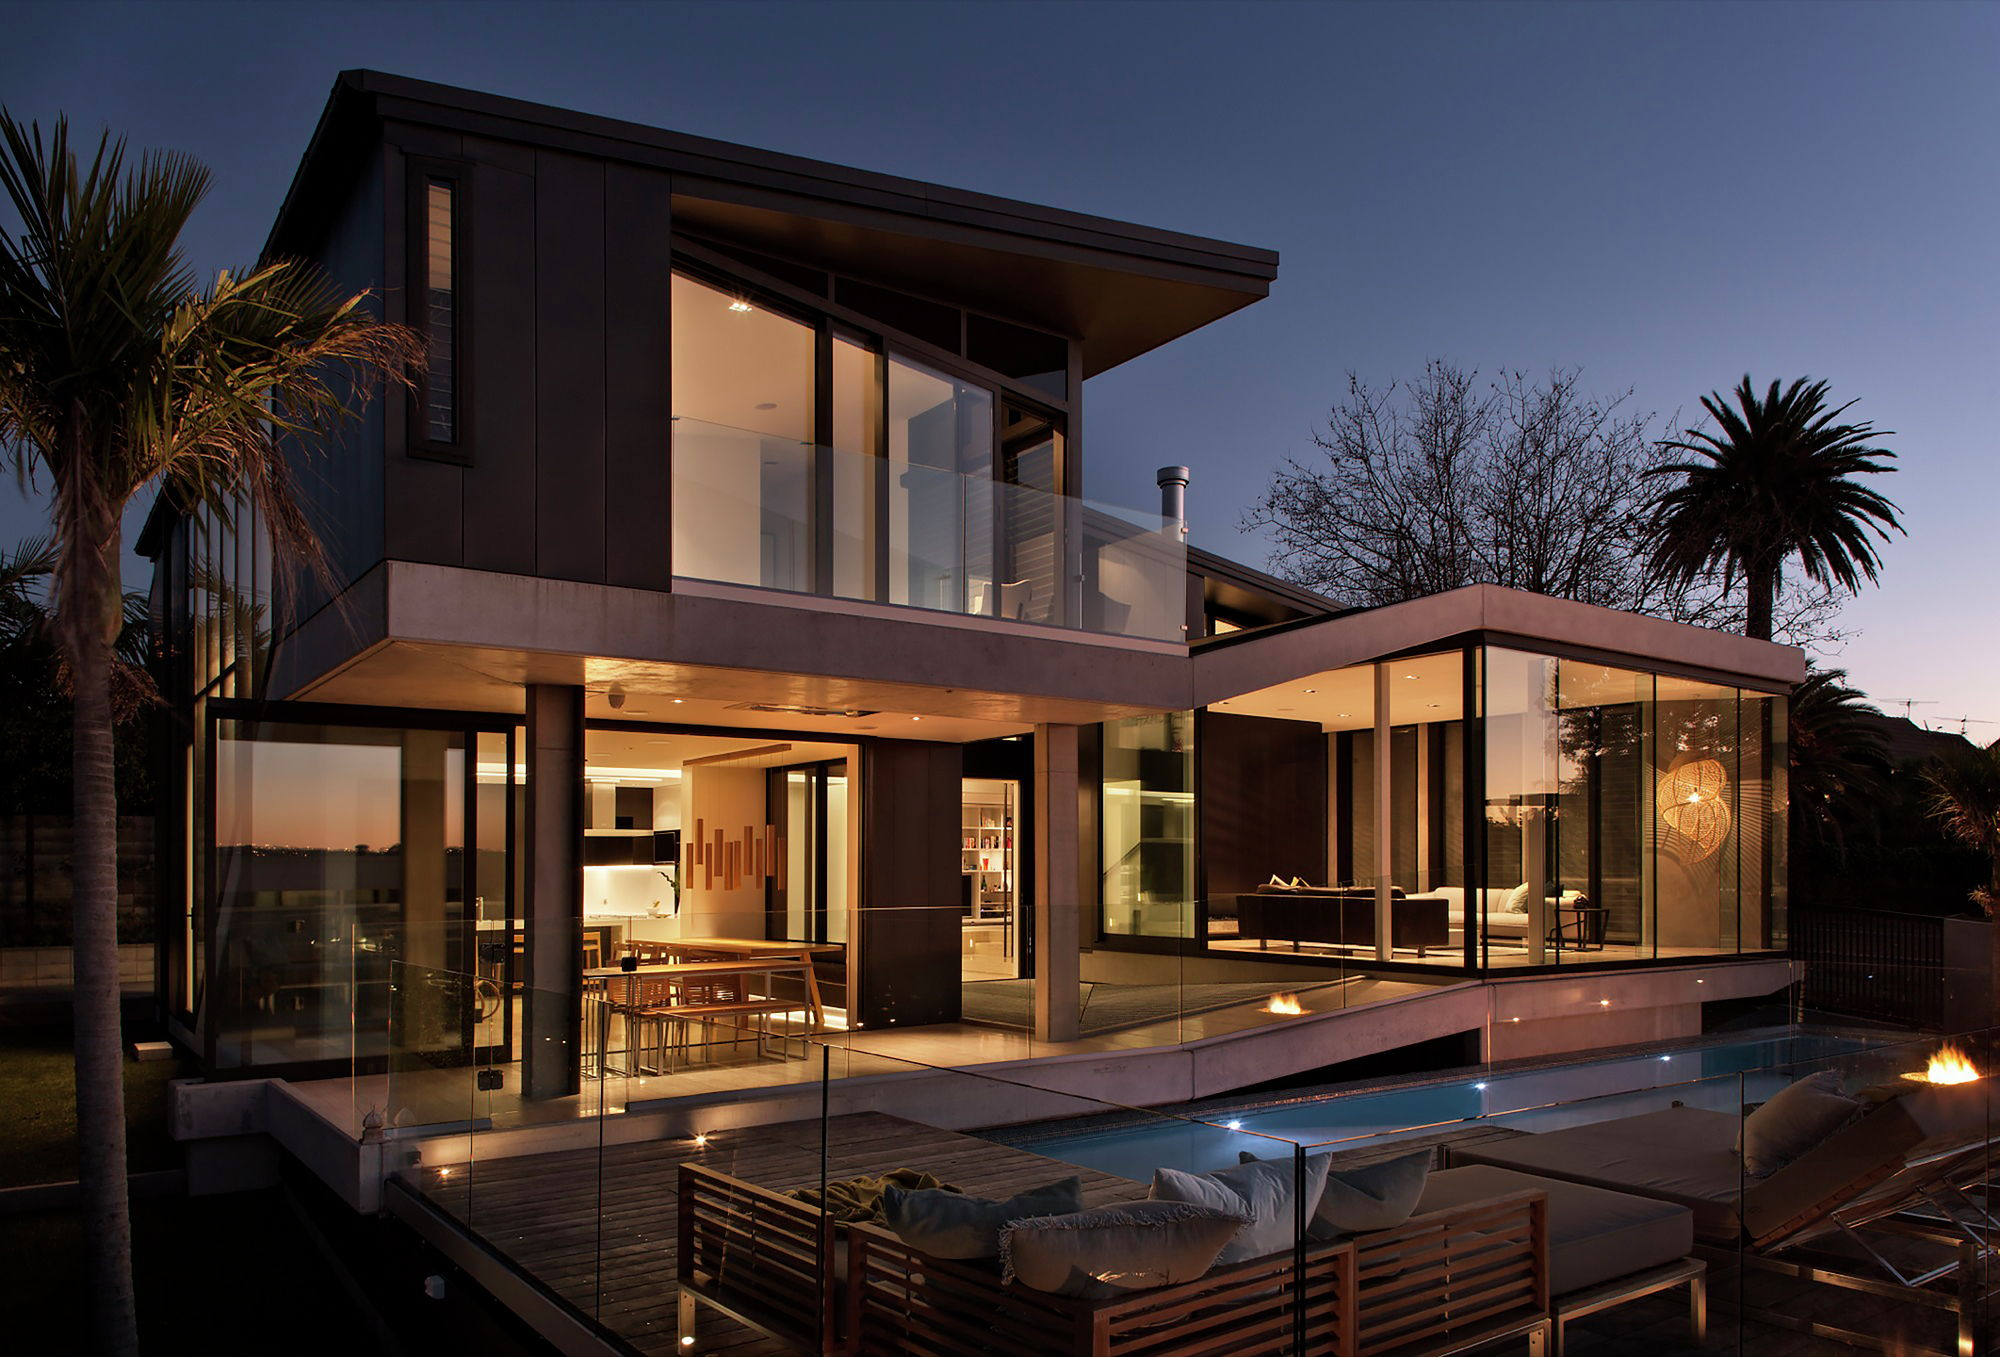 Out of town villa in new zealand upon the project of for Modern house projects